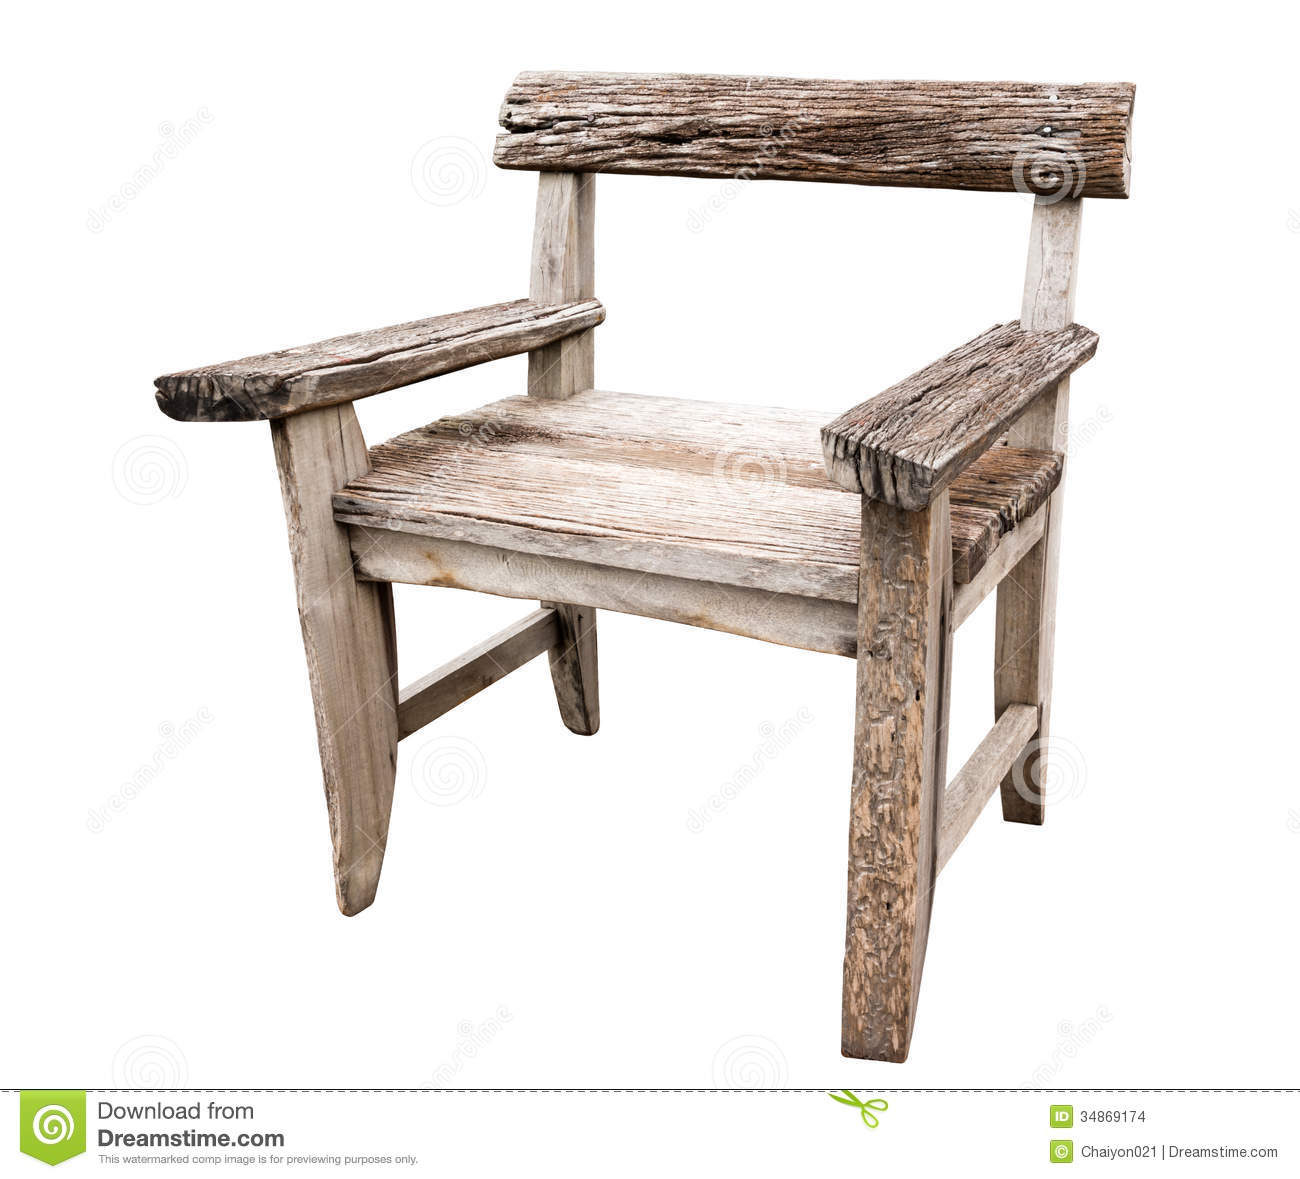 old wooden chair. royalty-free stock photo. download old wood chair wooden